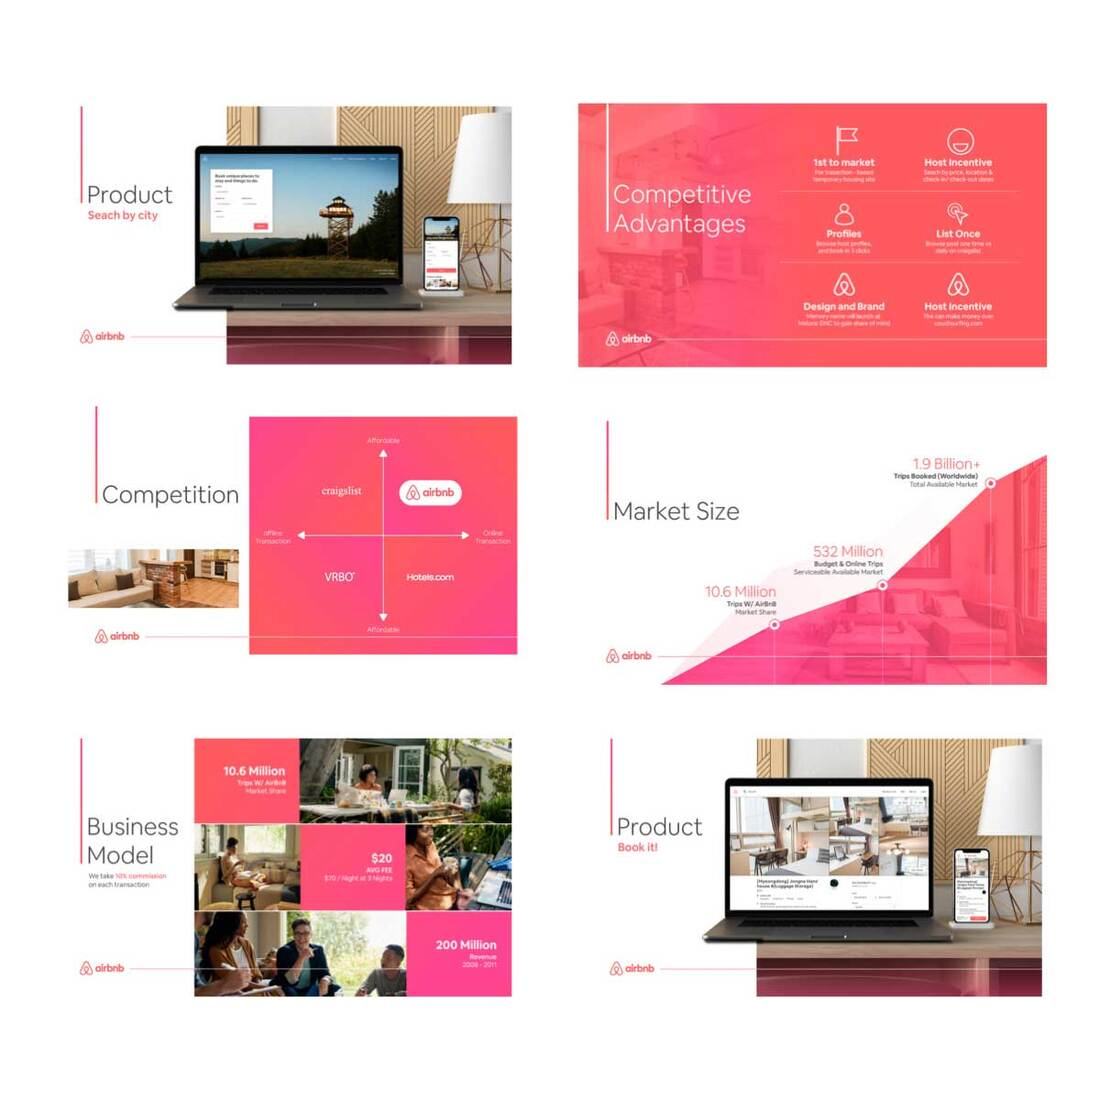 Image contains airbnb pitch deck